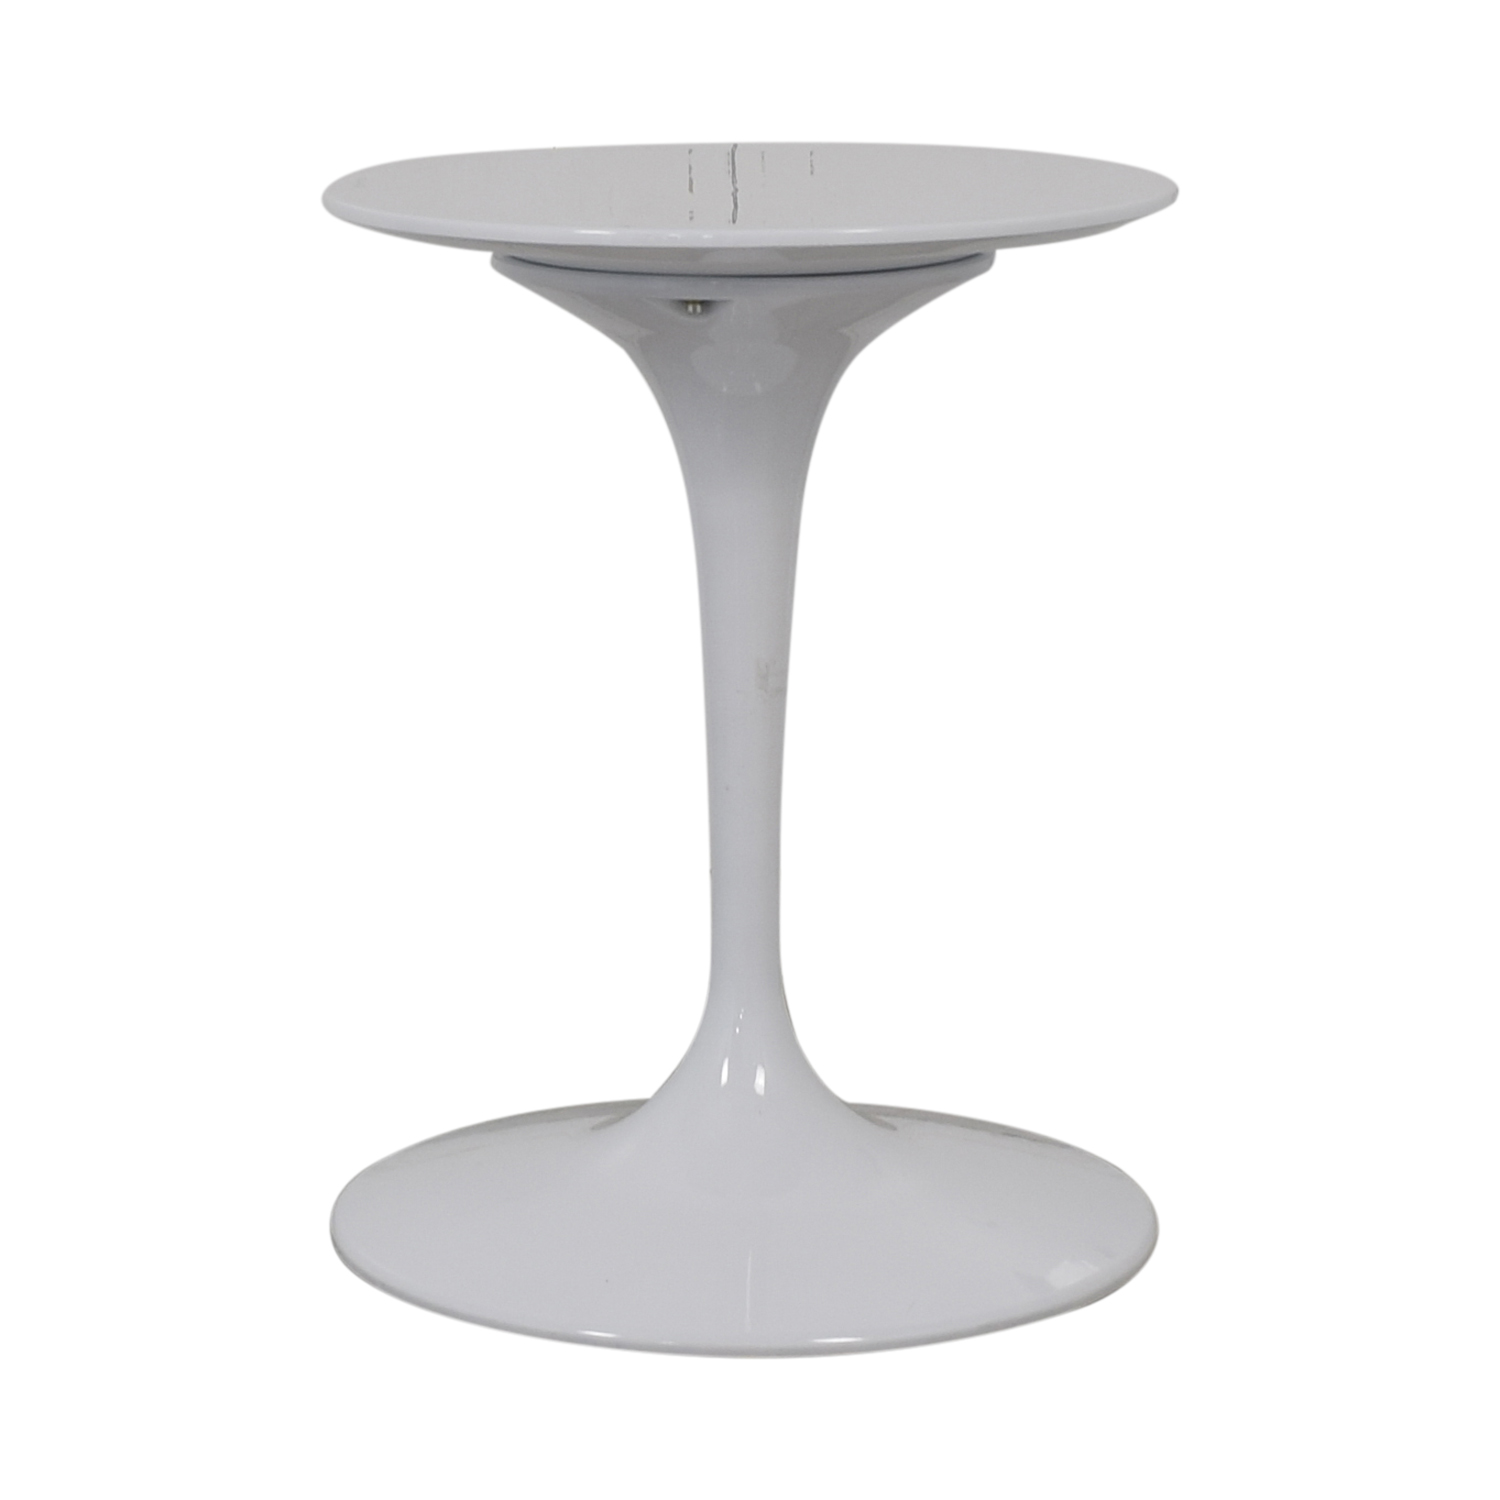 Kardiel Kardiel White Pedestal Bistro Table second hand